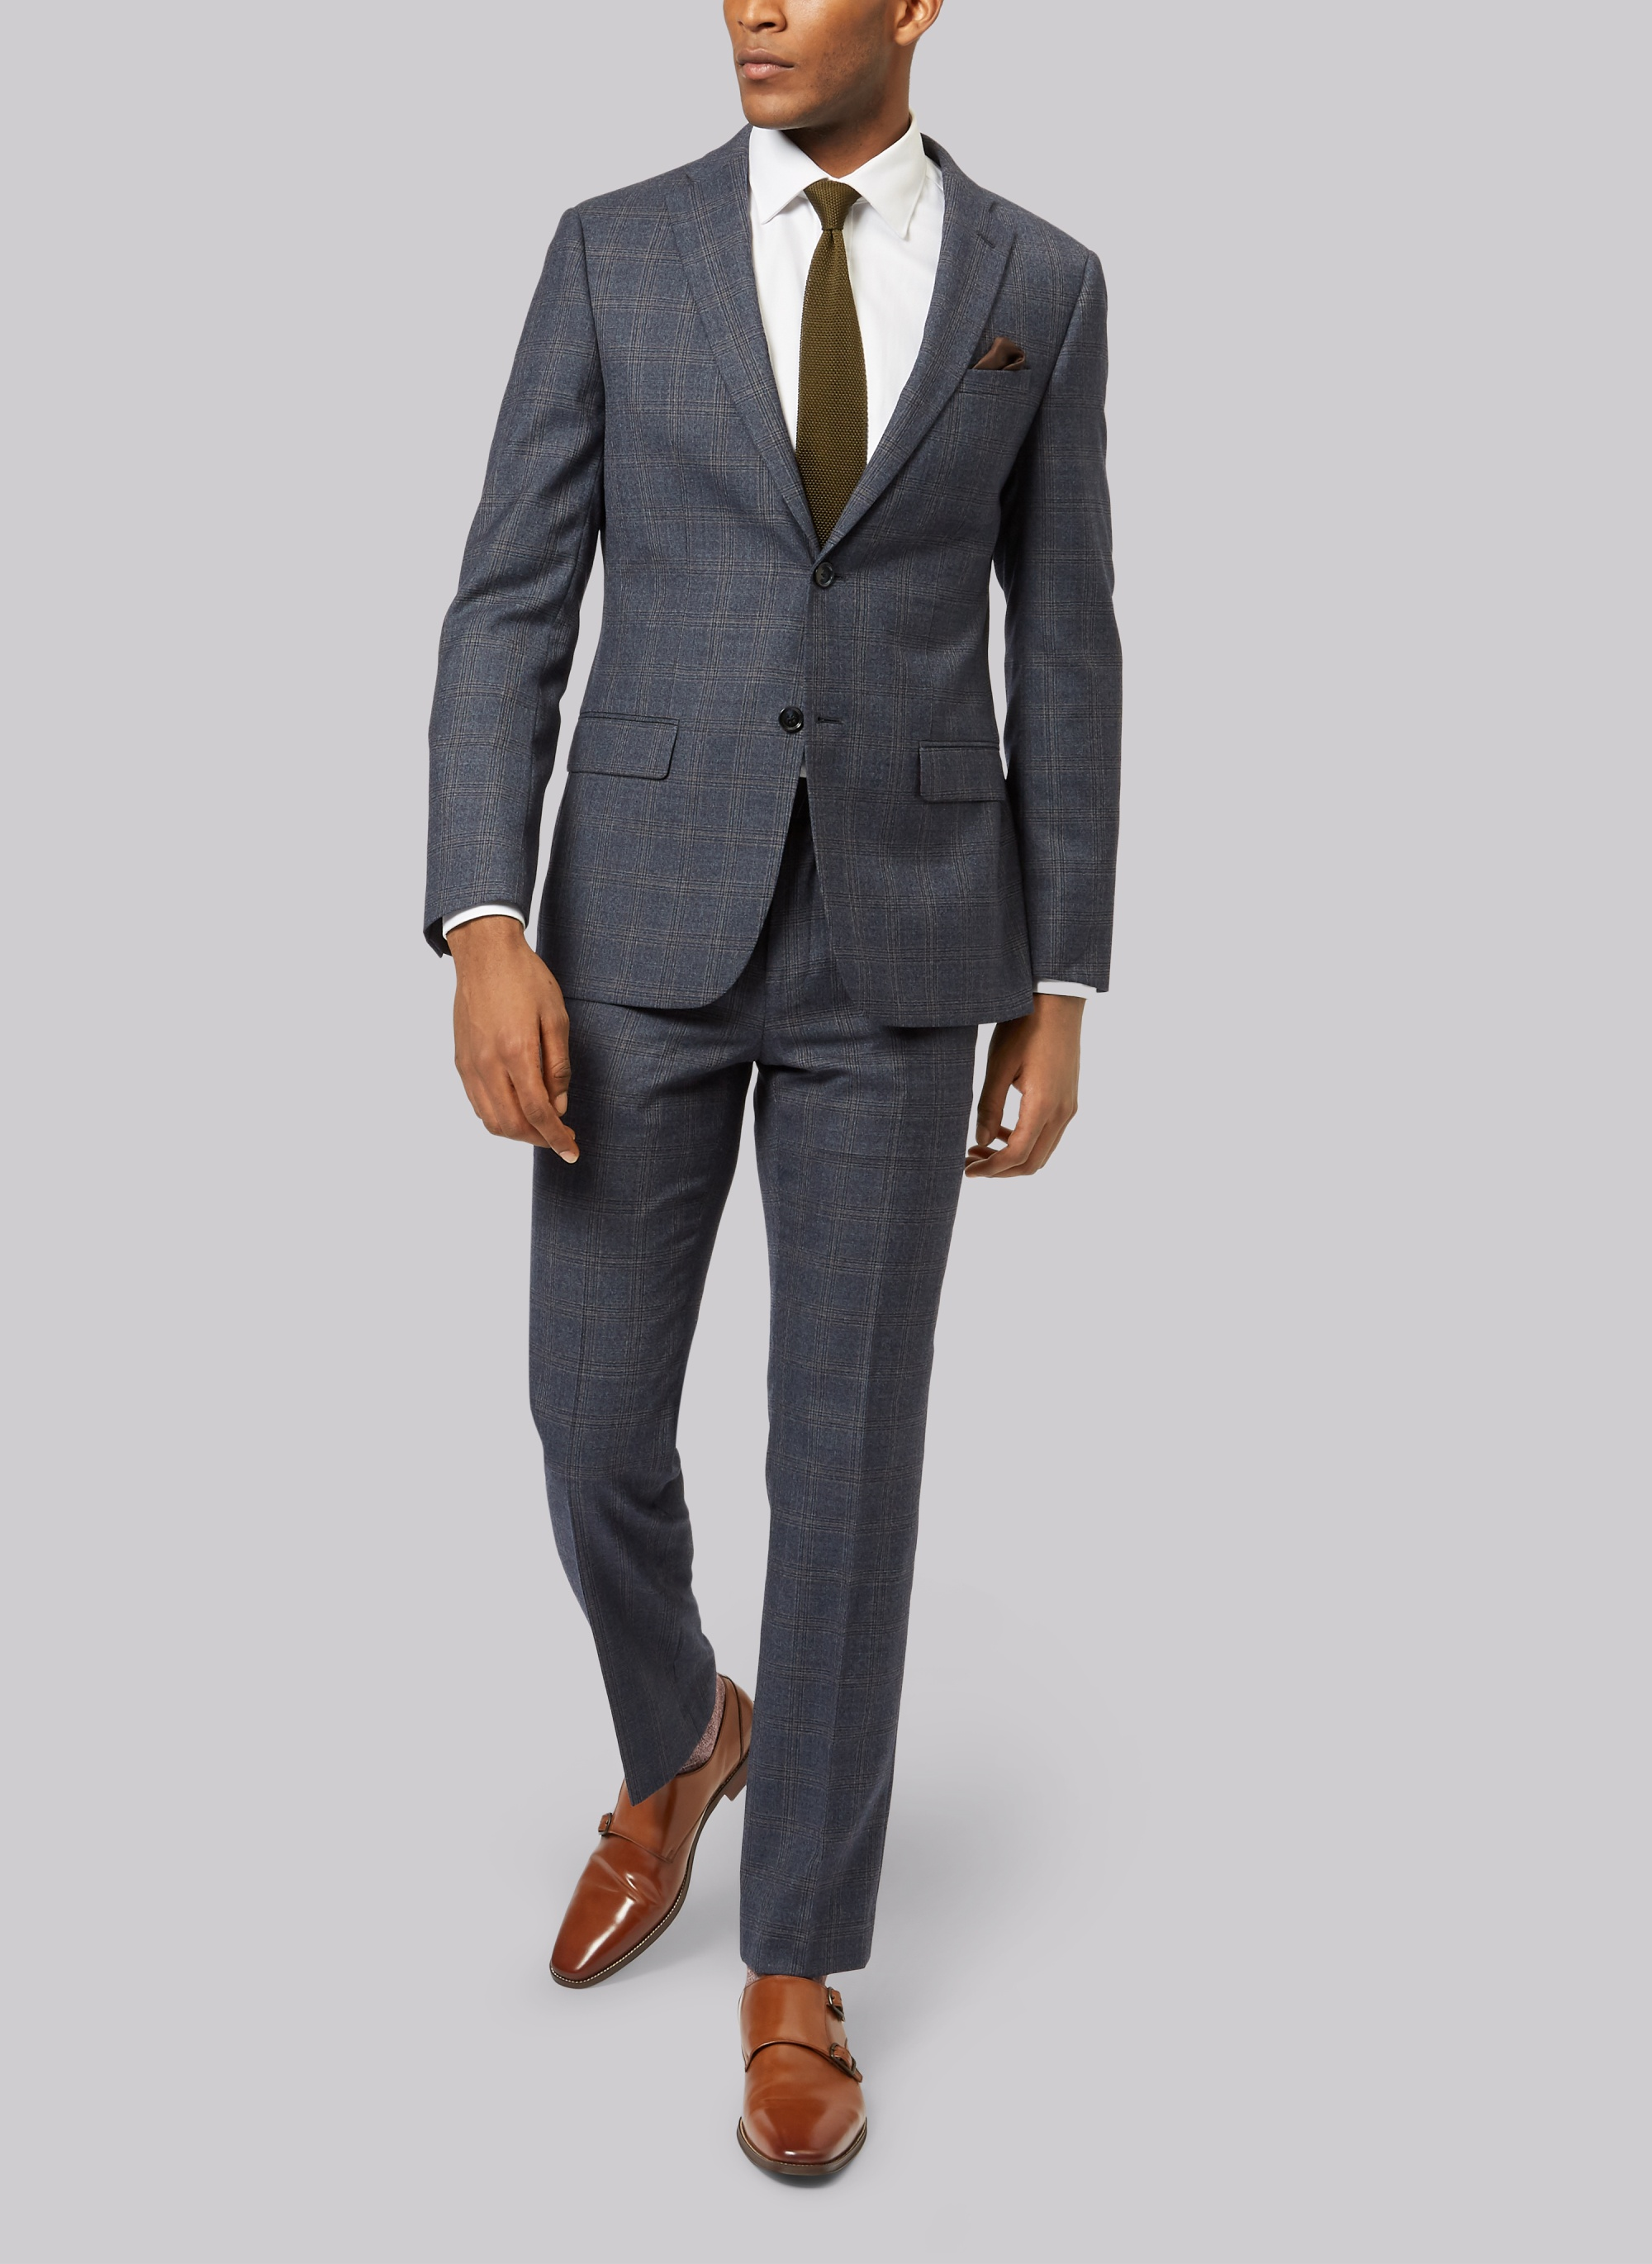 Ted Baker Tailored Fit Blue with Orange Jacket